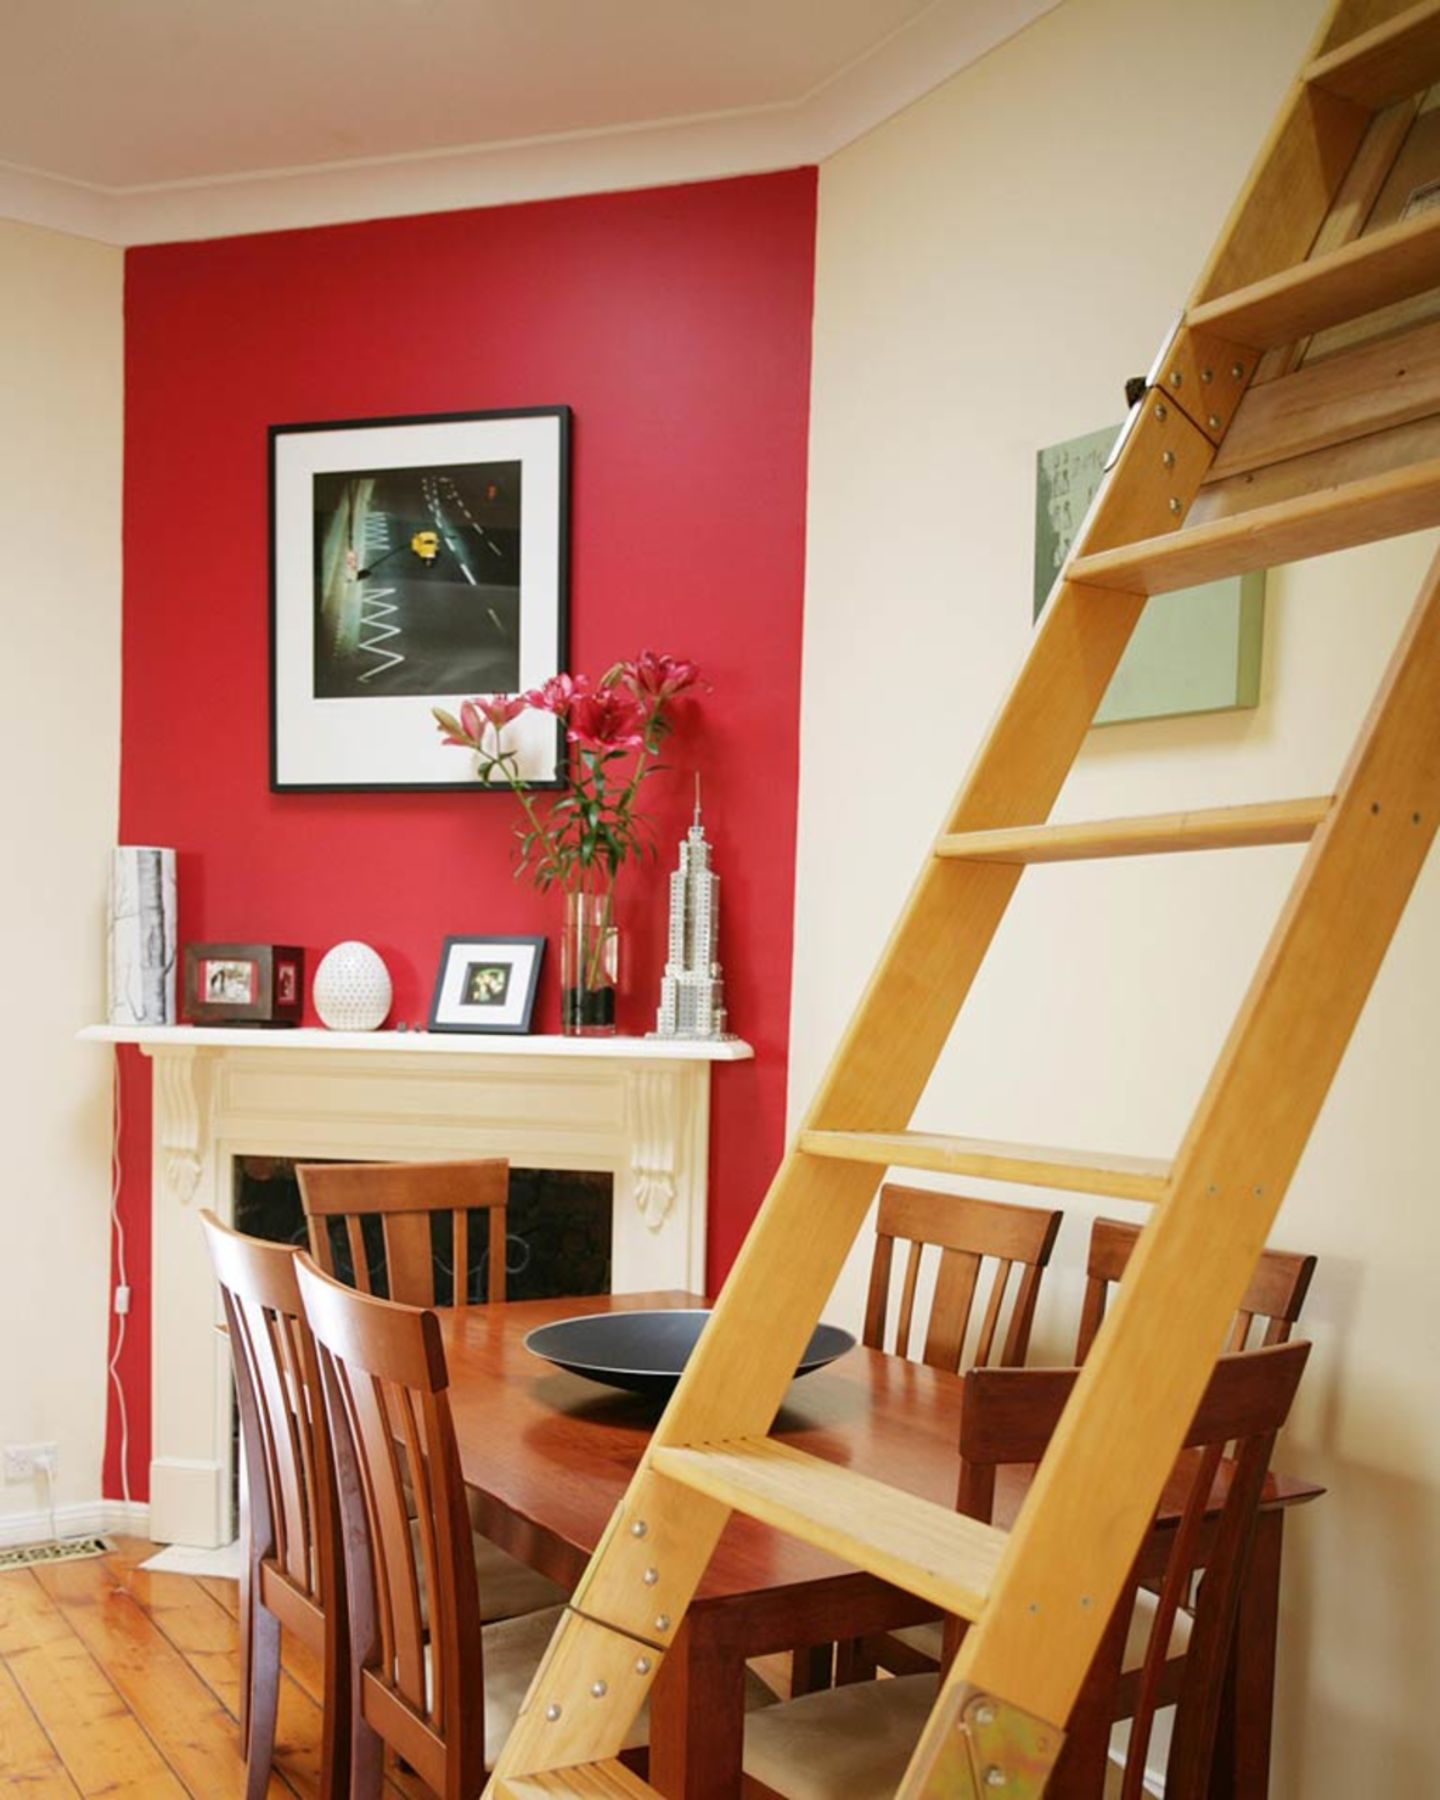 Extending into the roof space is a growing option for an increasing number of home owners.